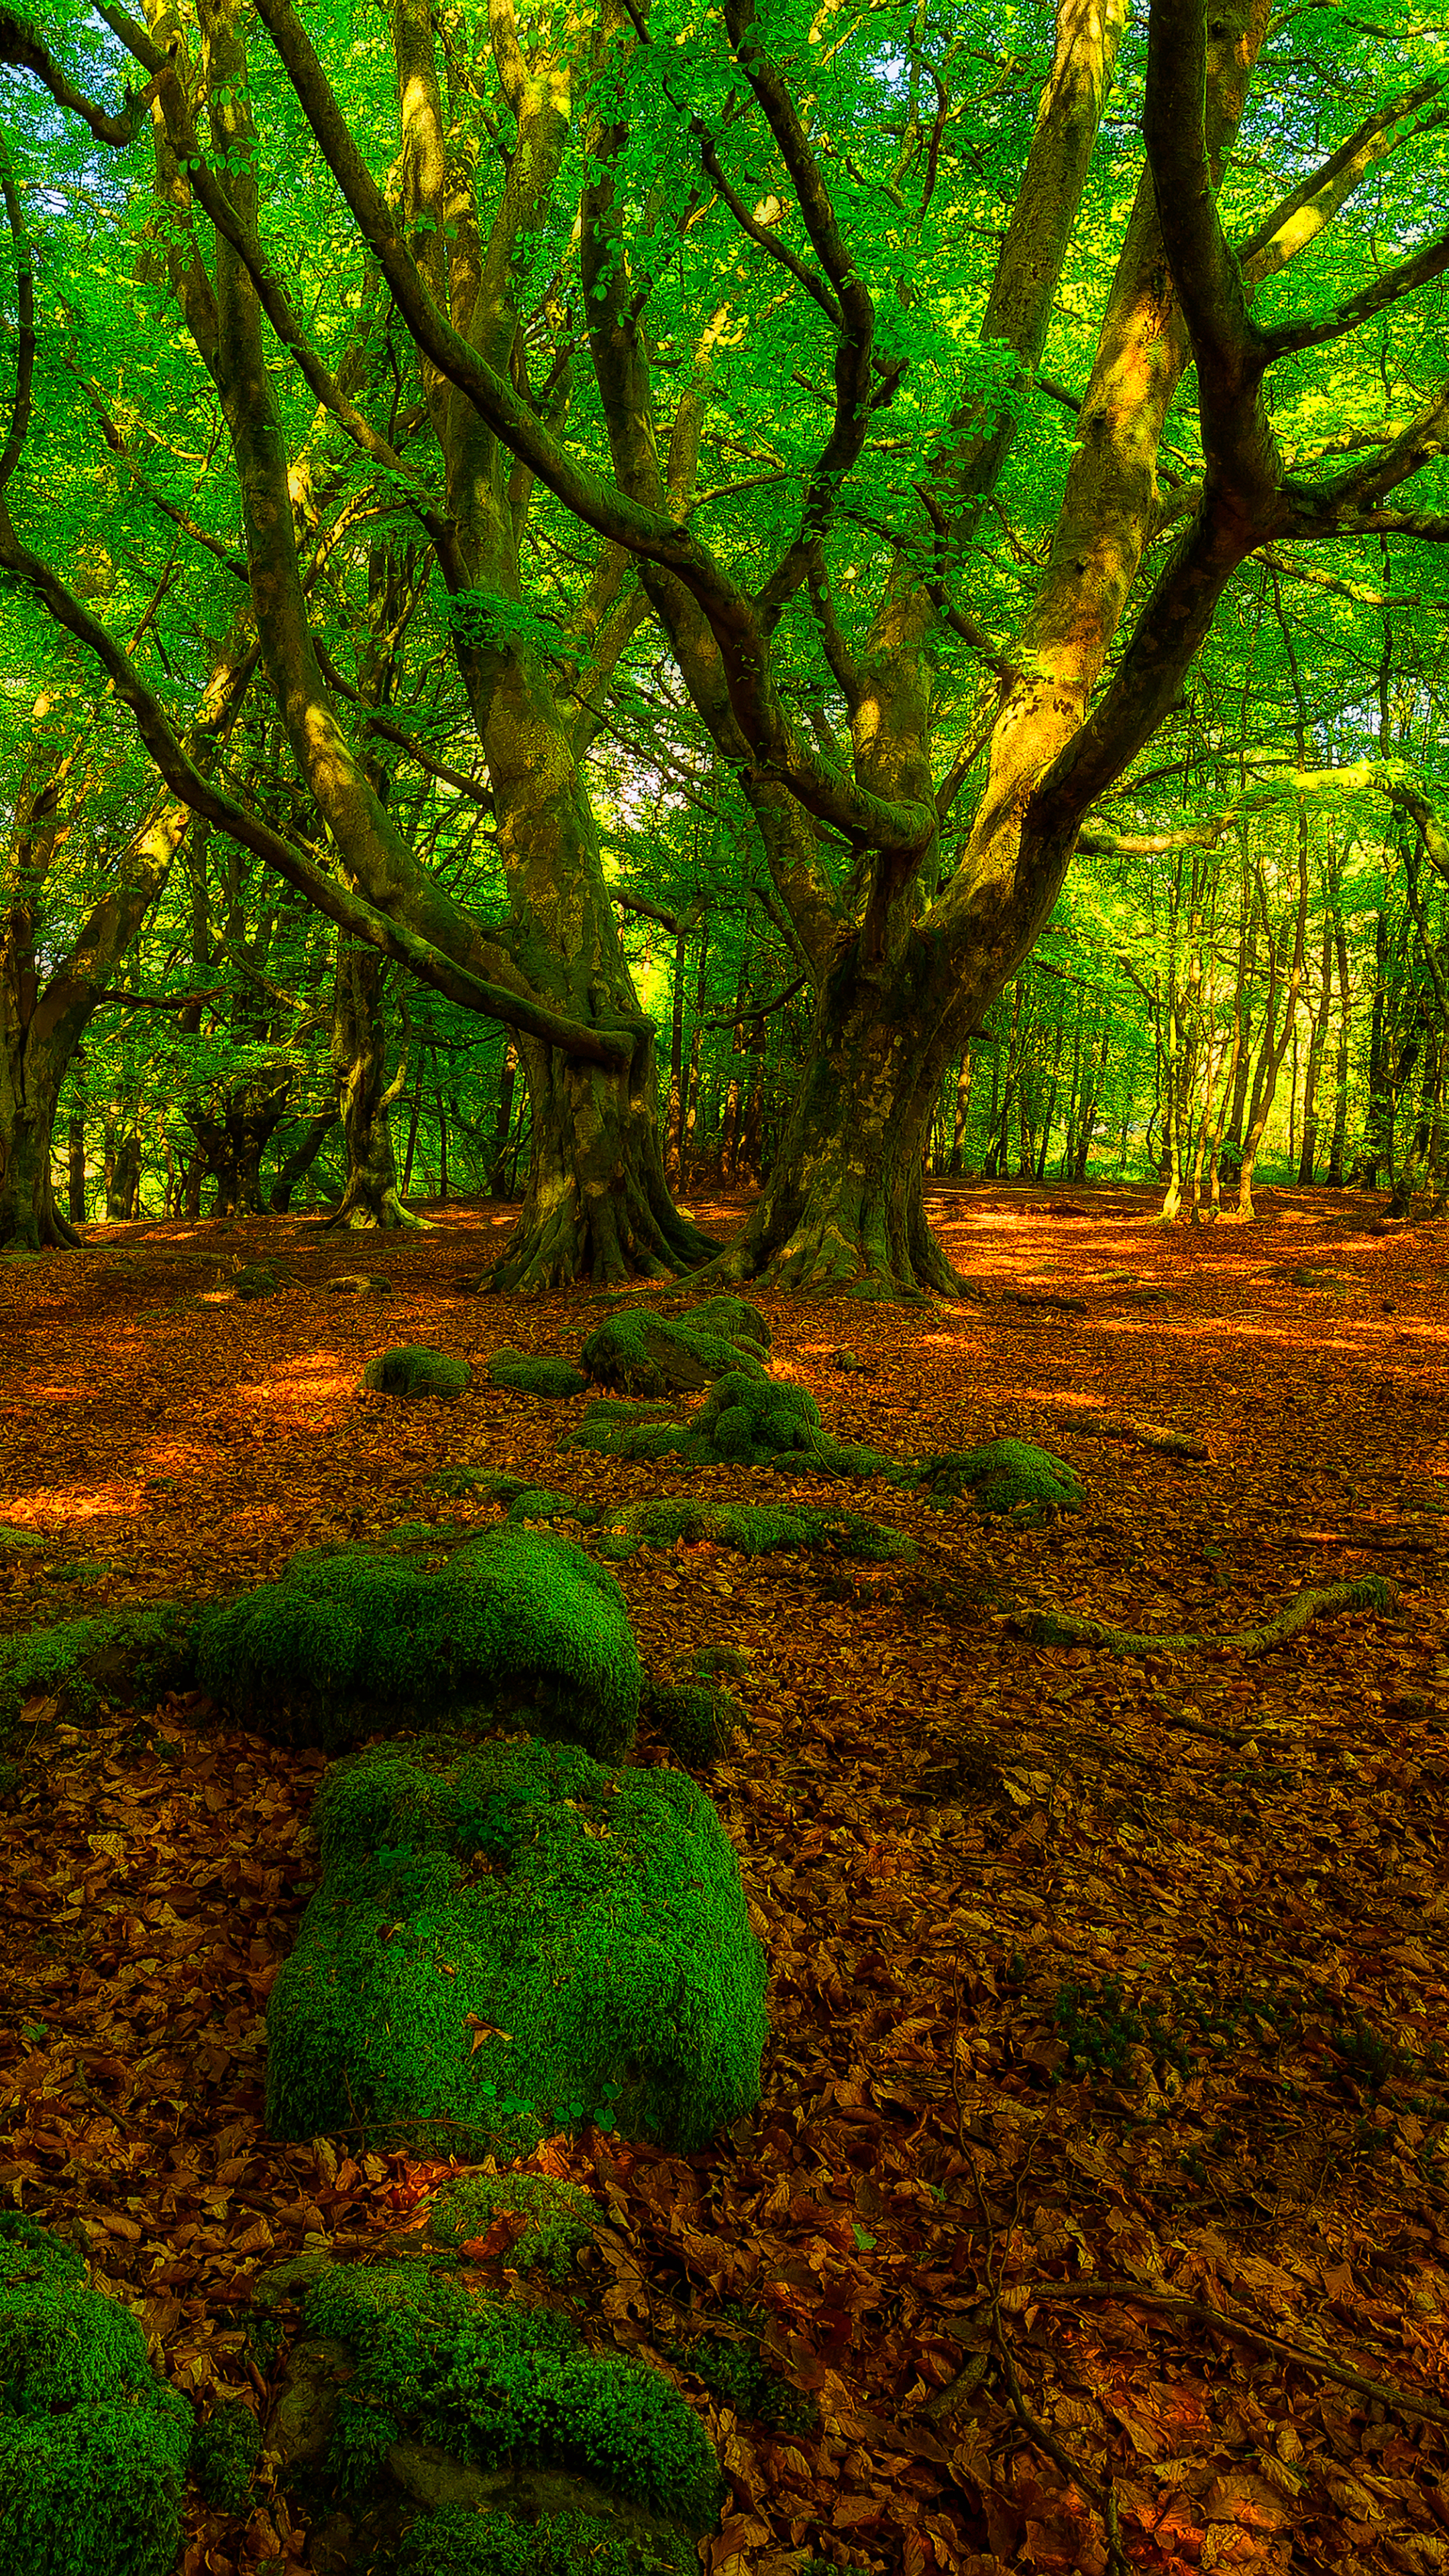 Earth Forest 1080x1920 Wallpaper ID 692324